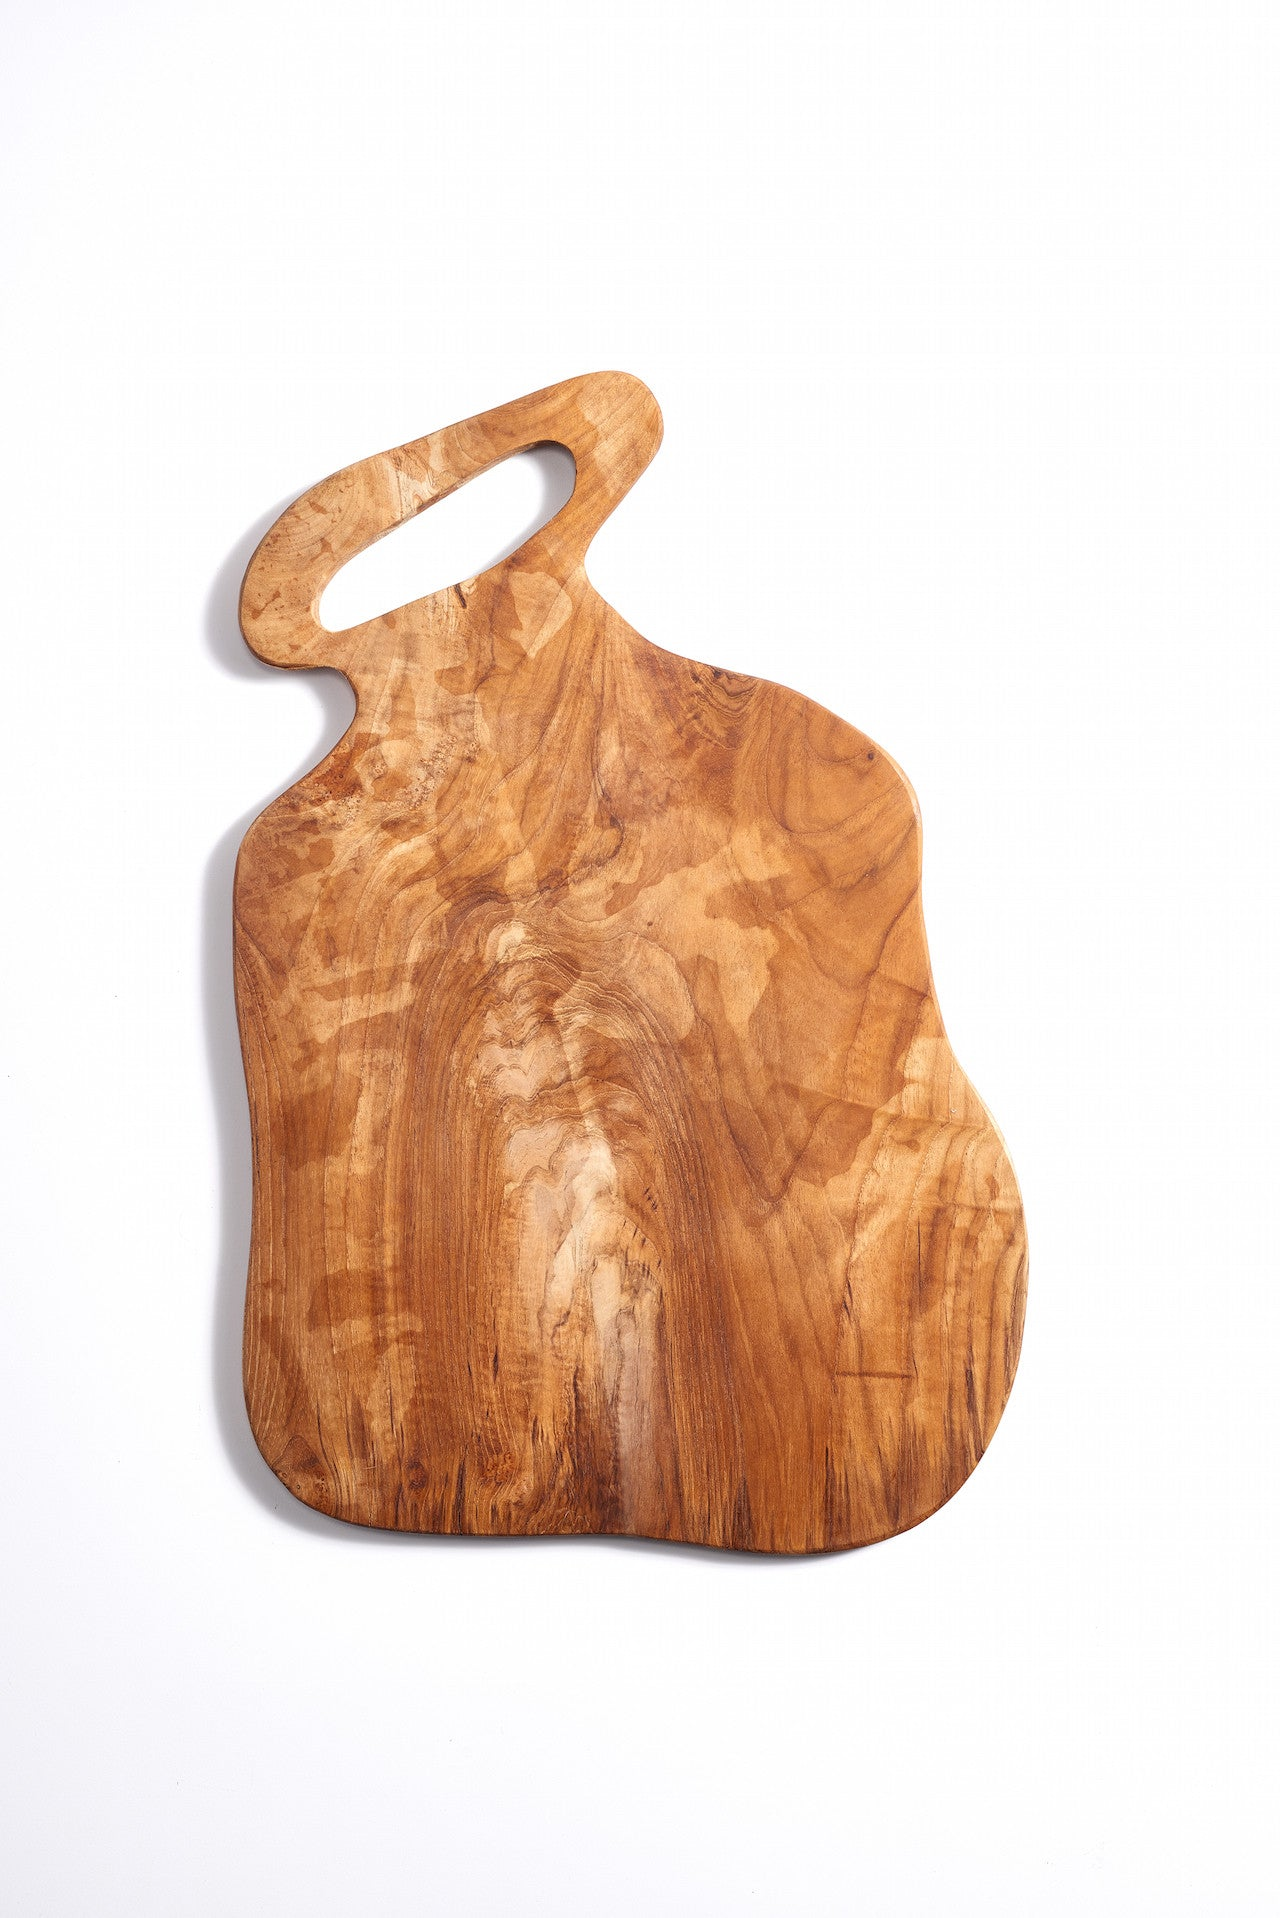 Organic Shaped Wooden Platter with Handle